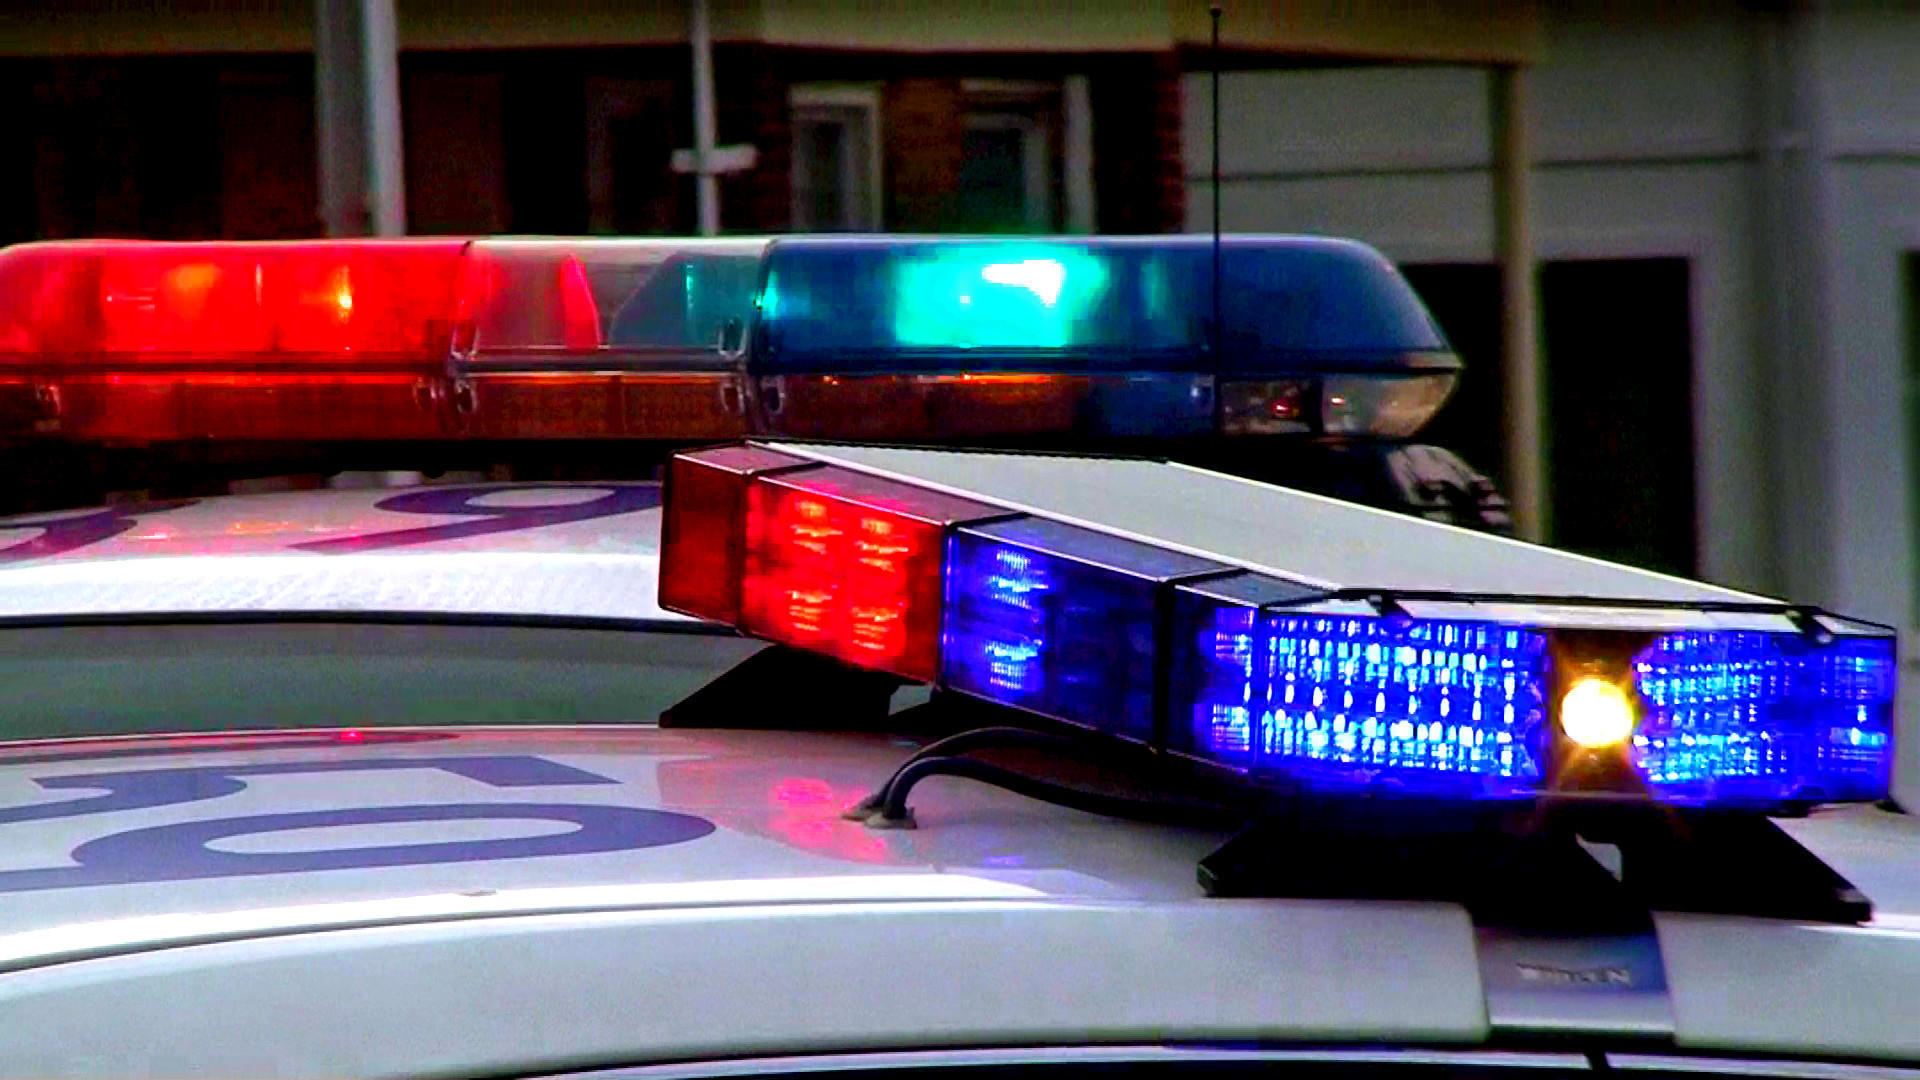 17-year-old arrested in armed carjacking in Locust Point